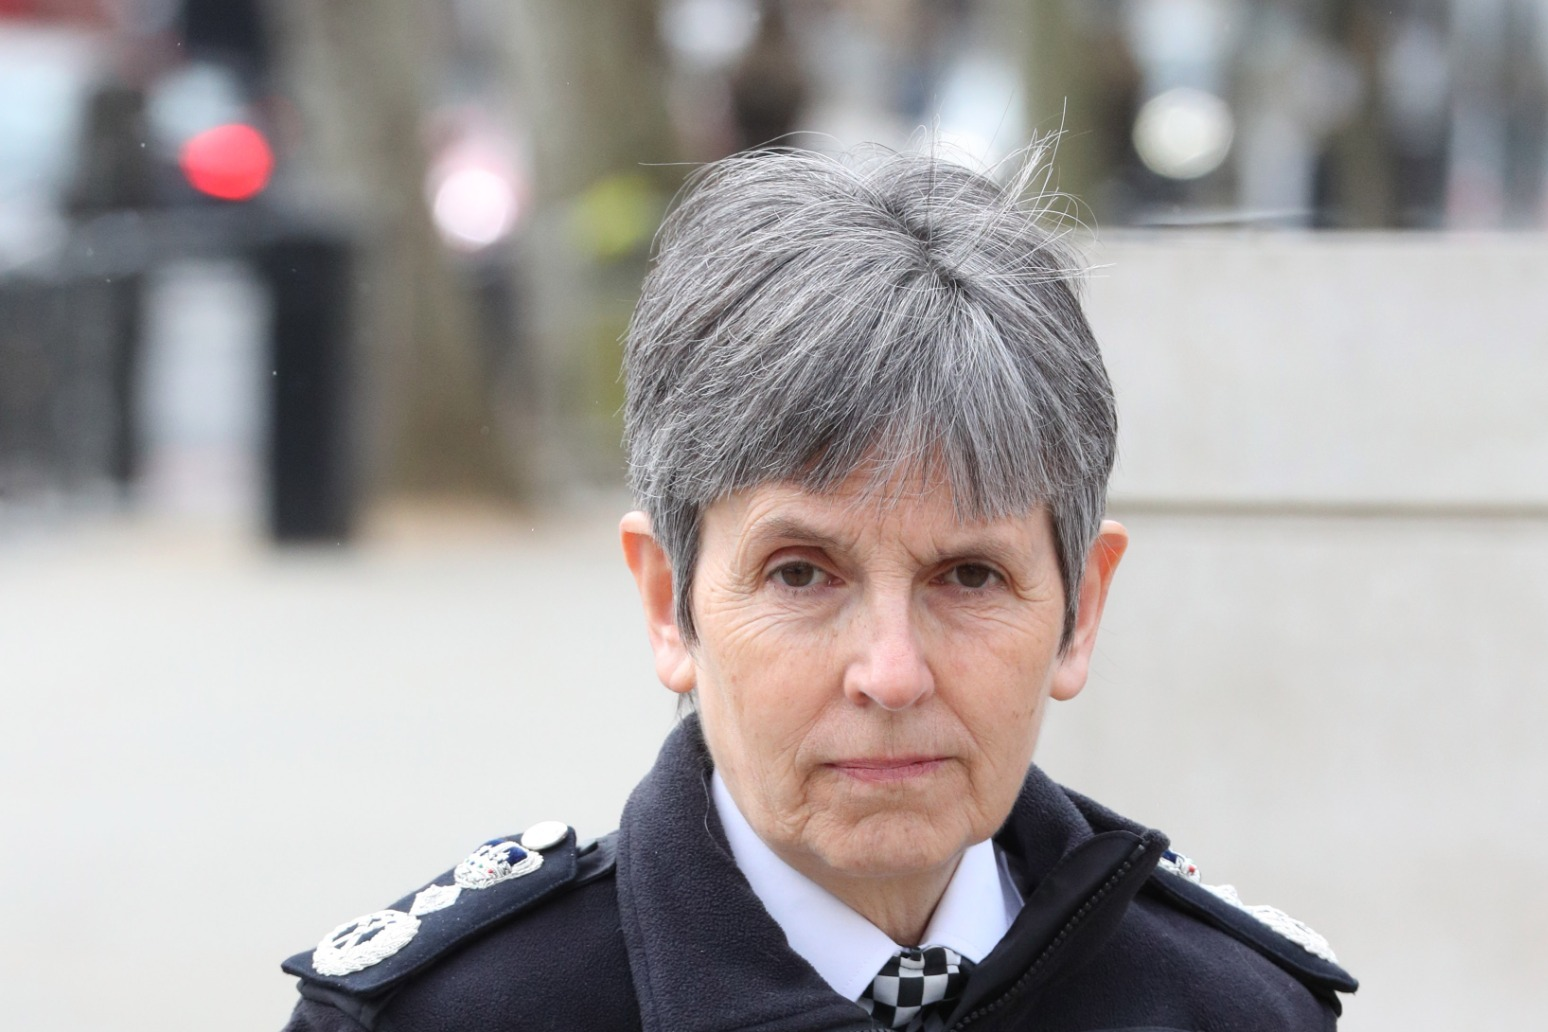 Dame Cressida Dick to continue leading Met Police until 2024